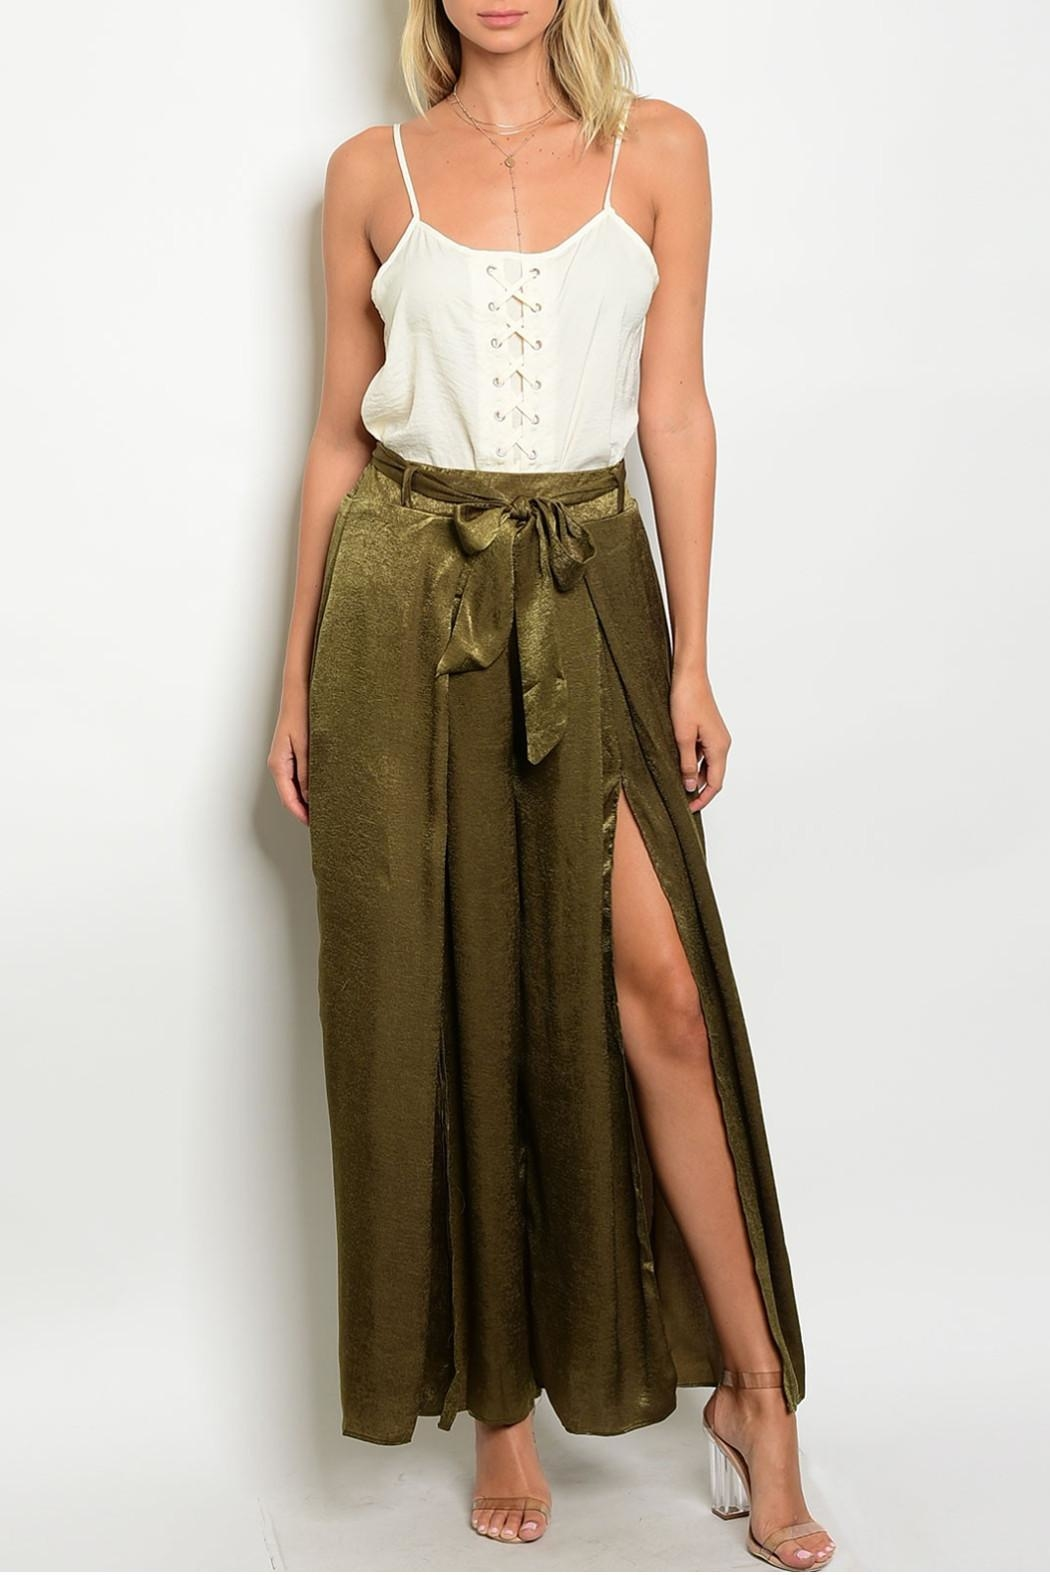 in the Beginning Olive Satin Palazzo Pants - Main Image